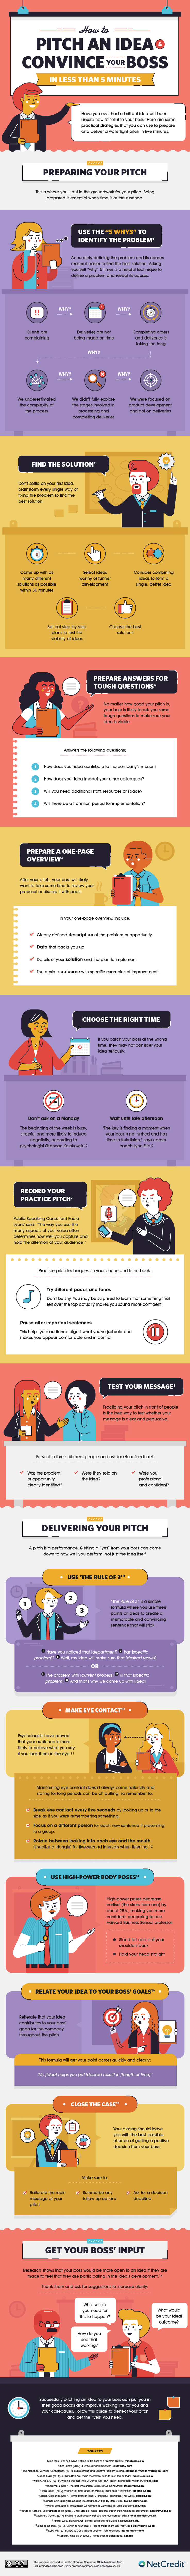 How to Pitch a New Idea to Your Boss Infographic